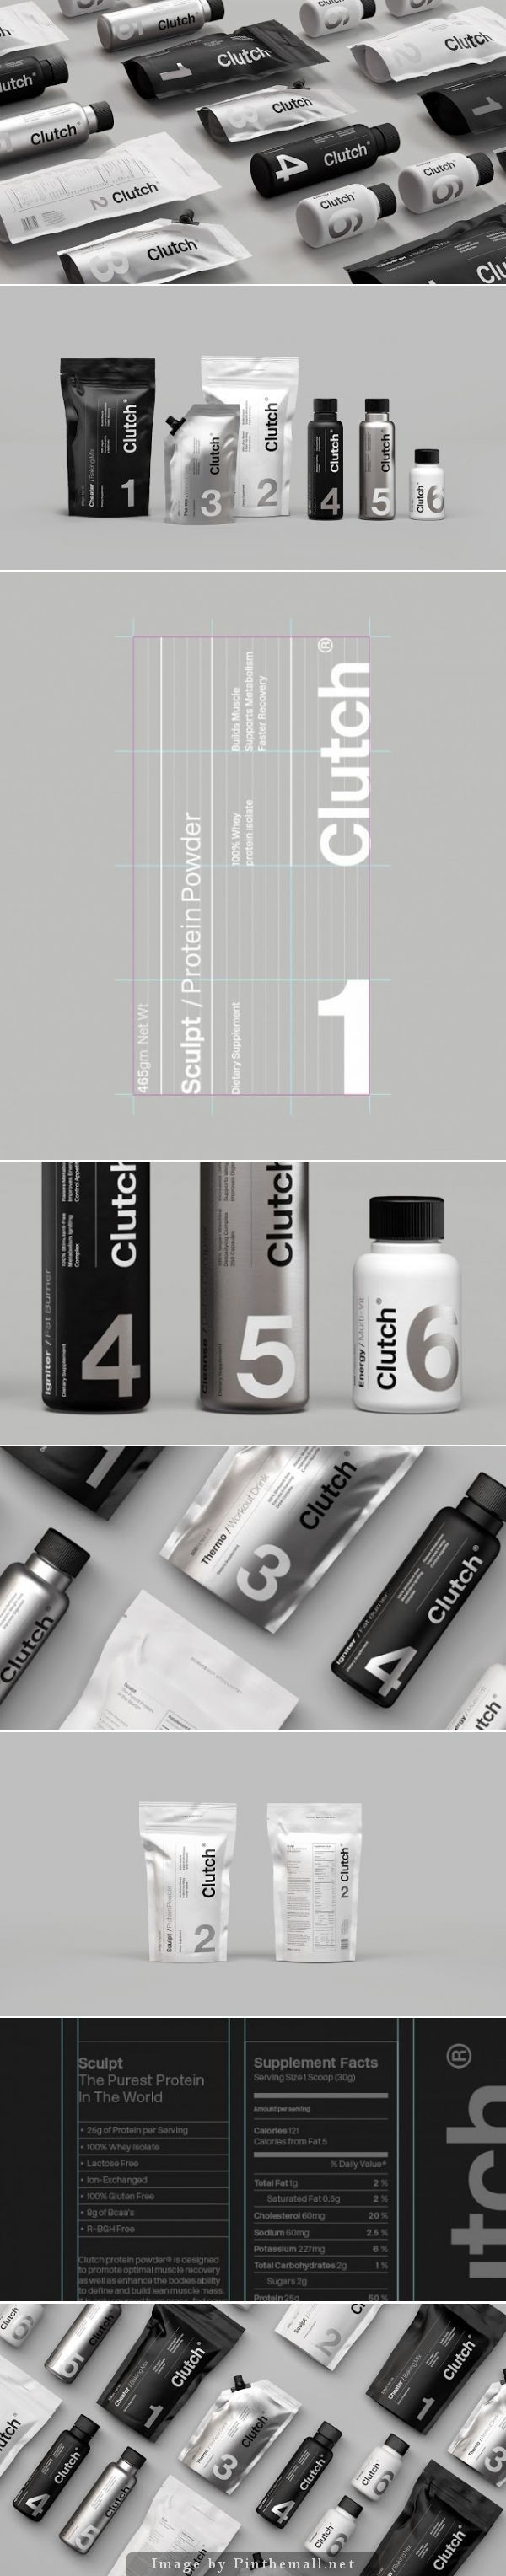 Clutch Bodyshop, Creative Agency: Socio Design - http://www.packagingoftheworld.com/2014/10/clutch-bodyshop.html: